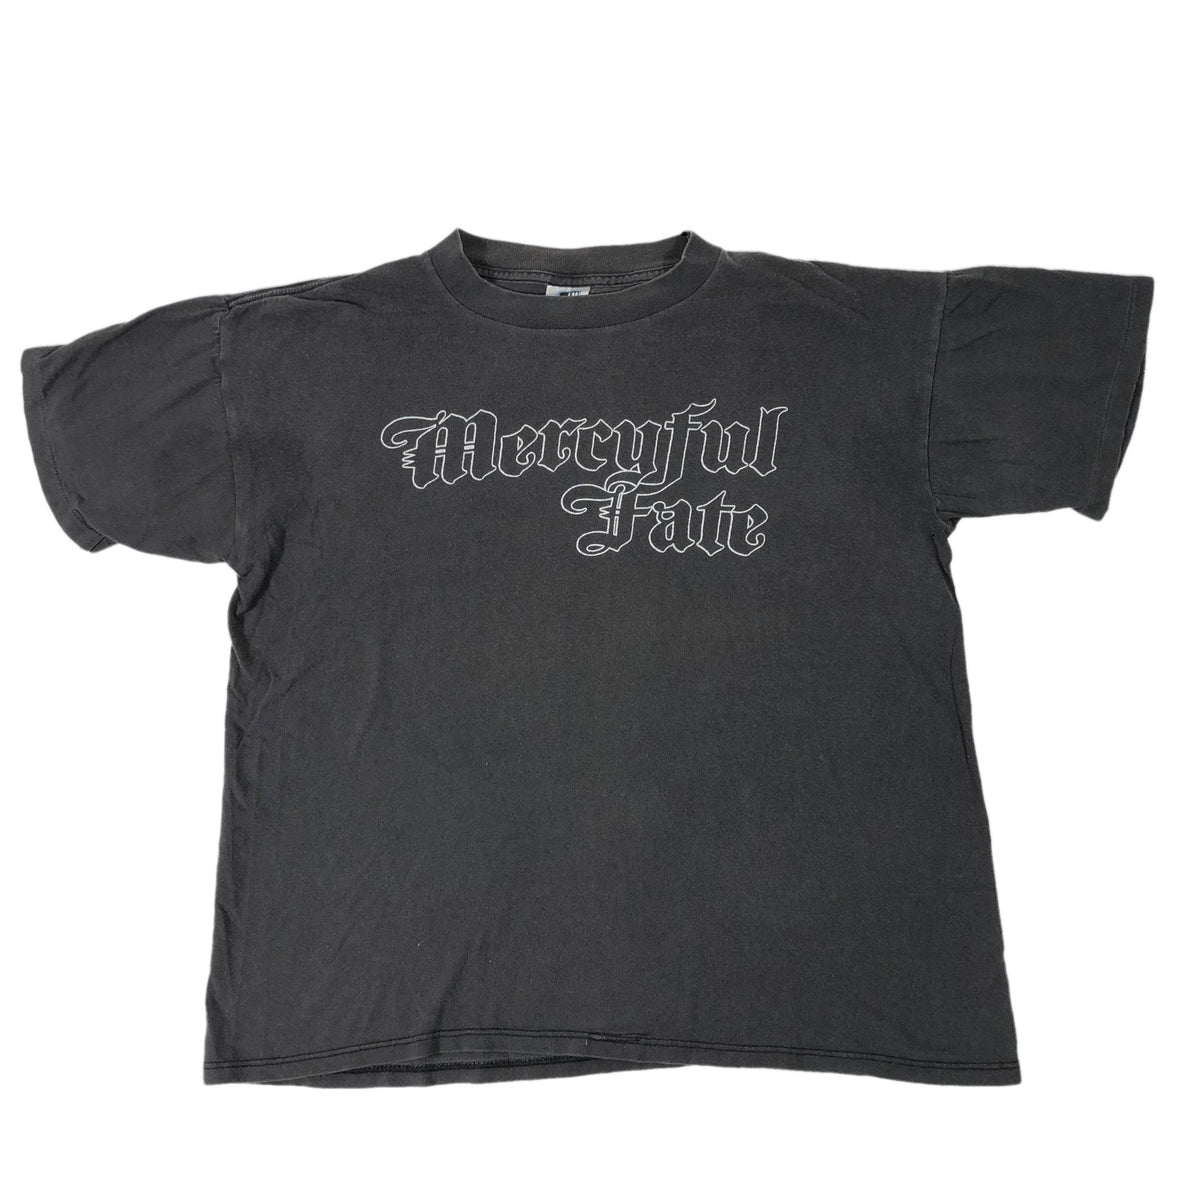 "Vintage Mercyful Fate ""US Tour '93"" T-Shirt - jointcustodydc"